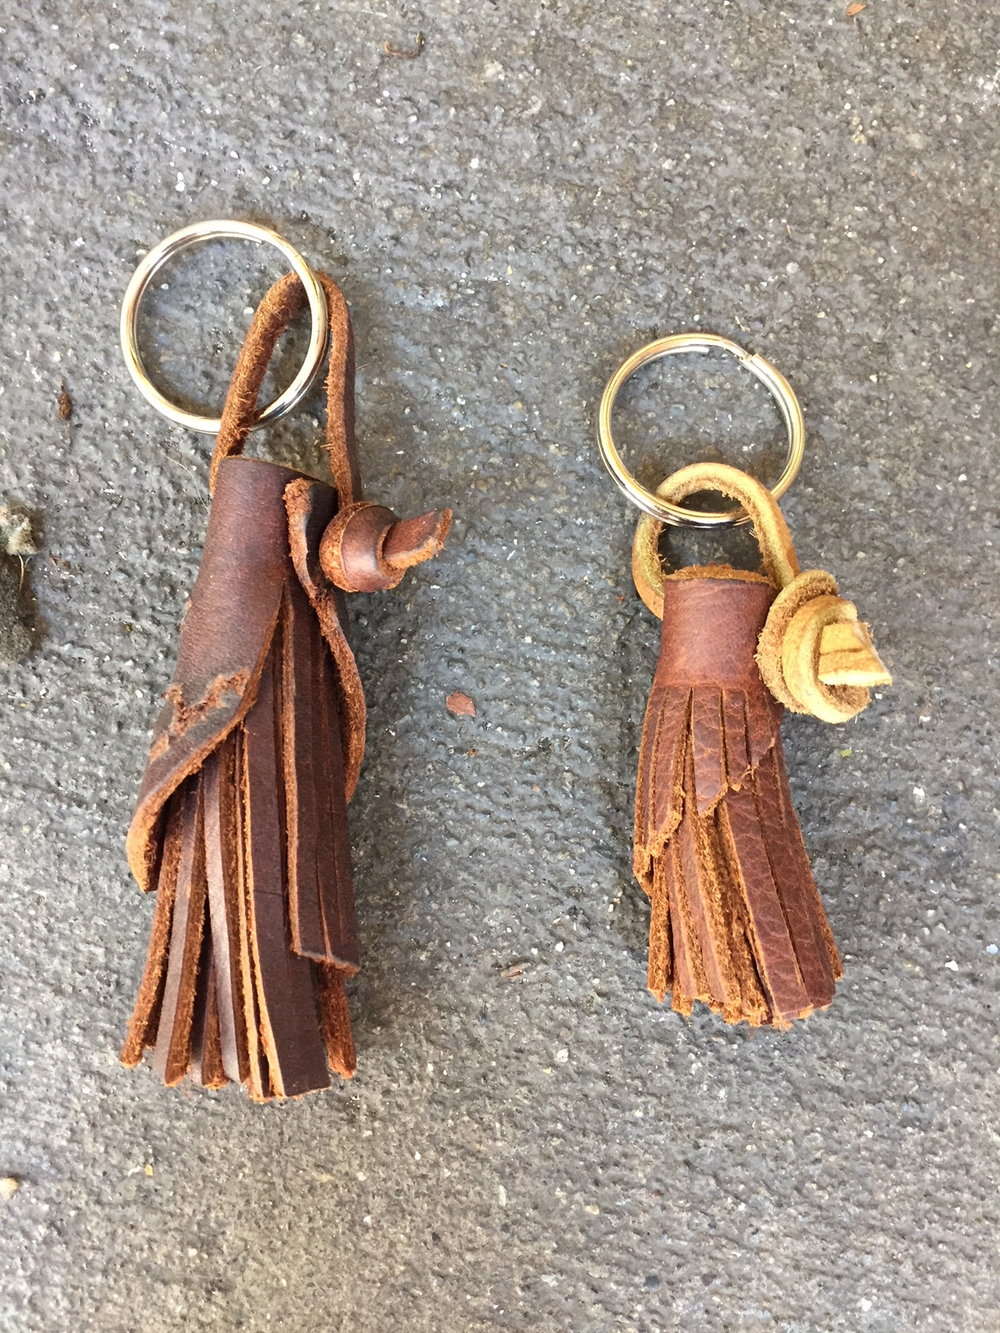 fringe key chains.jpg